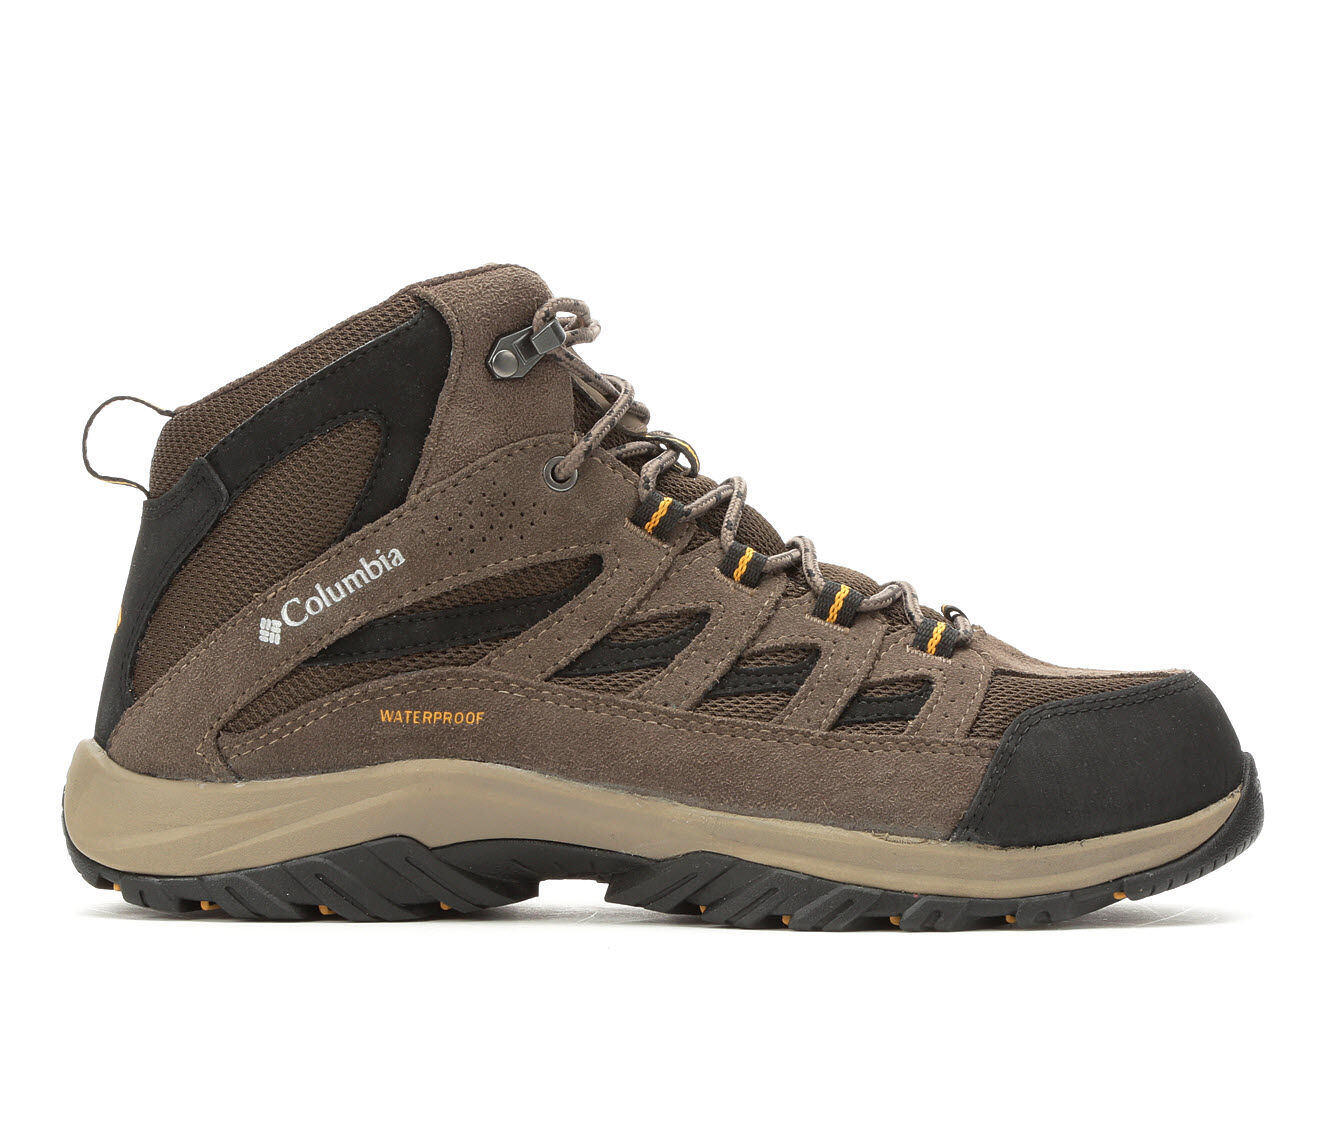 choose classic Men's Columbia Crestwood Mid Waterproof Hiking Boots Cordovan/Squash